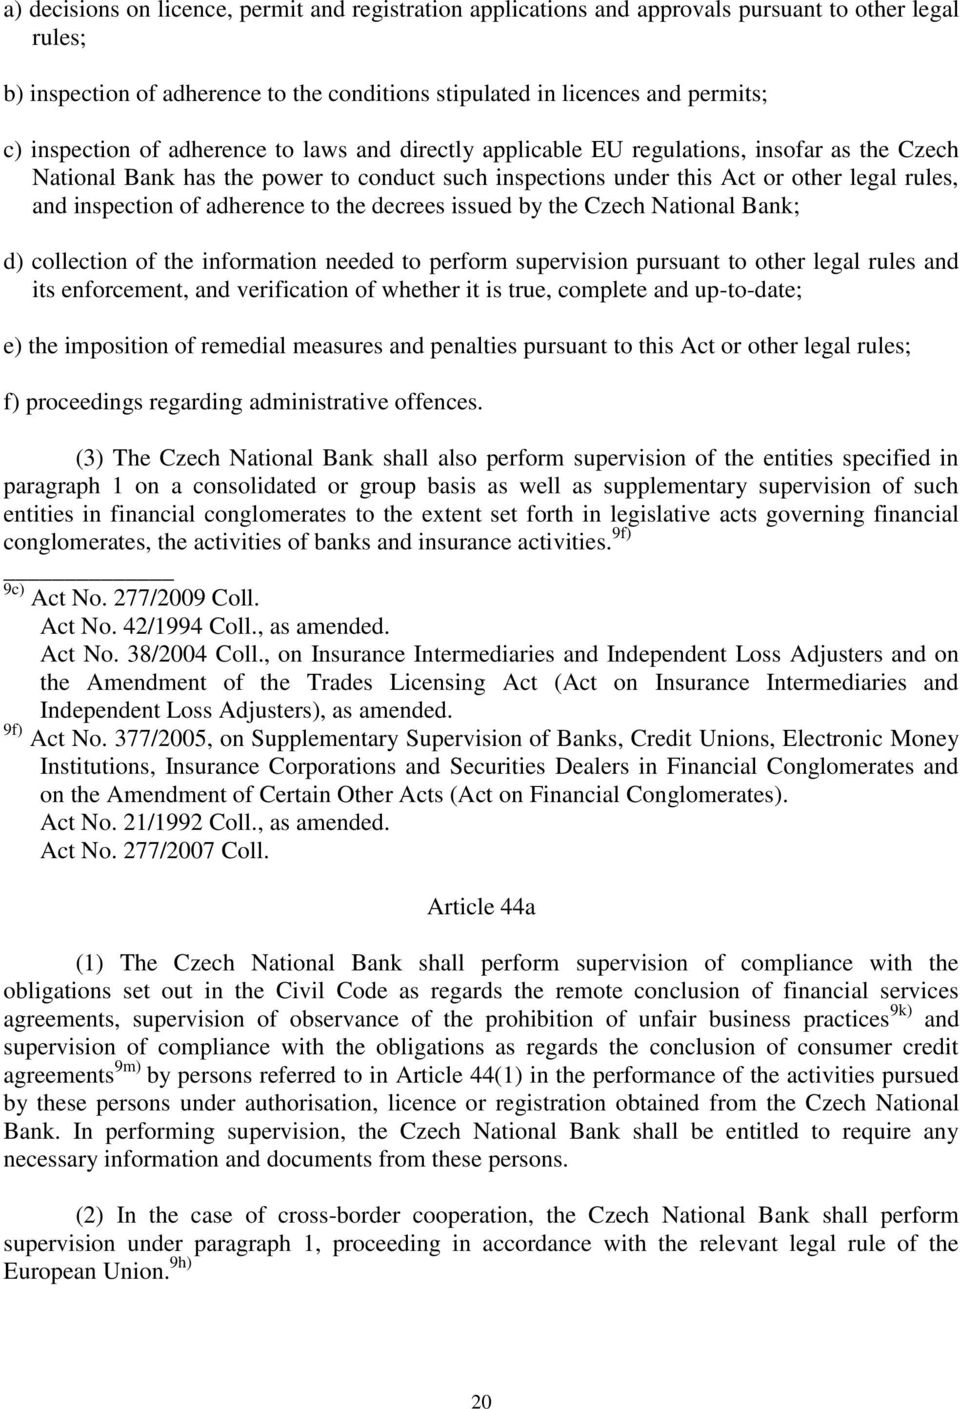 inspection of adherence to the decrees issued by the Czech National Bank; d) collection of the information needed to perform supervision pursuant to other legal rules and its enforcement, and